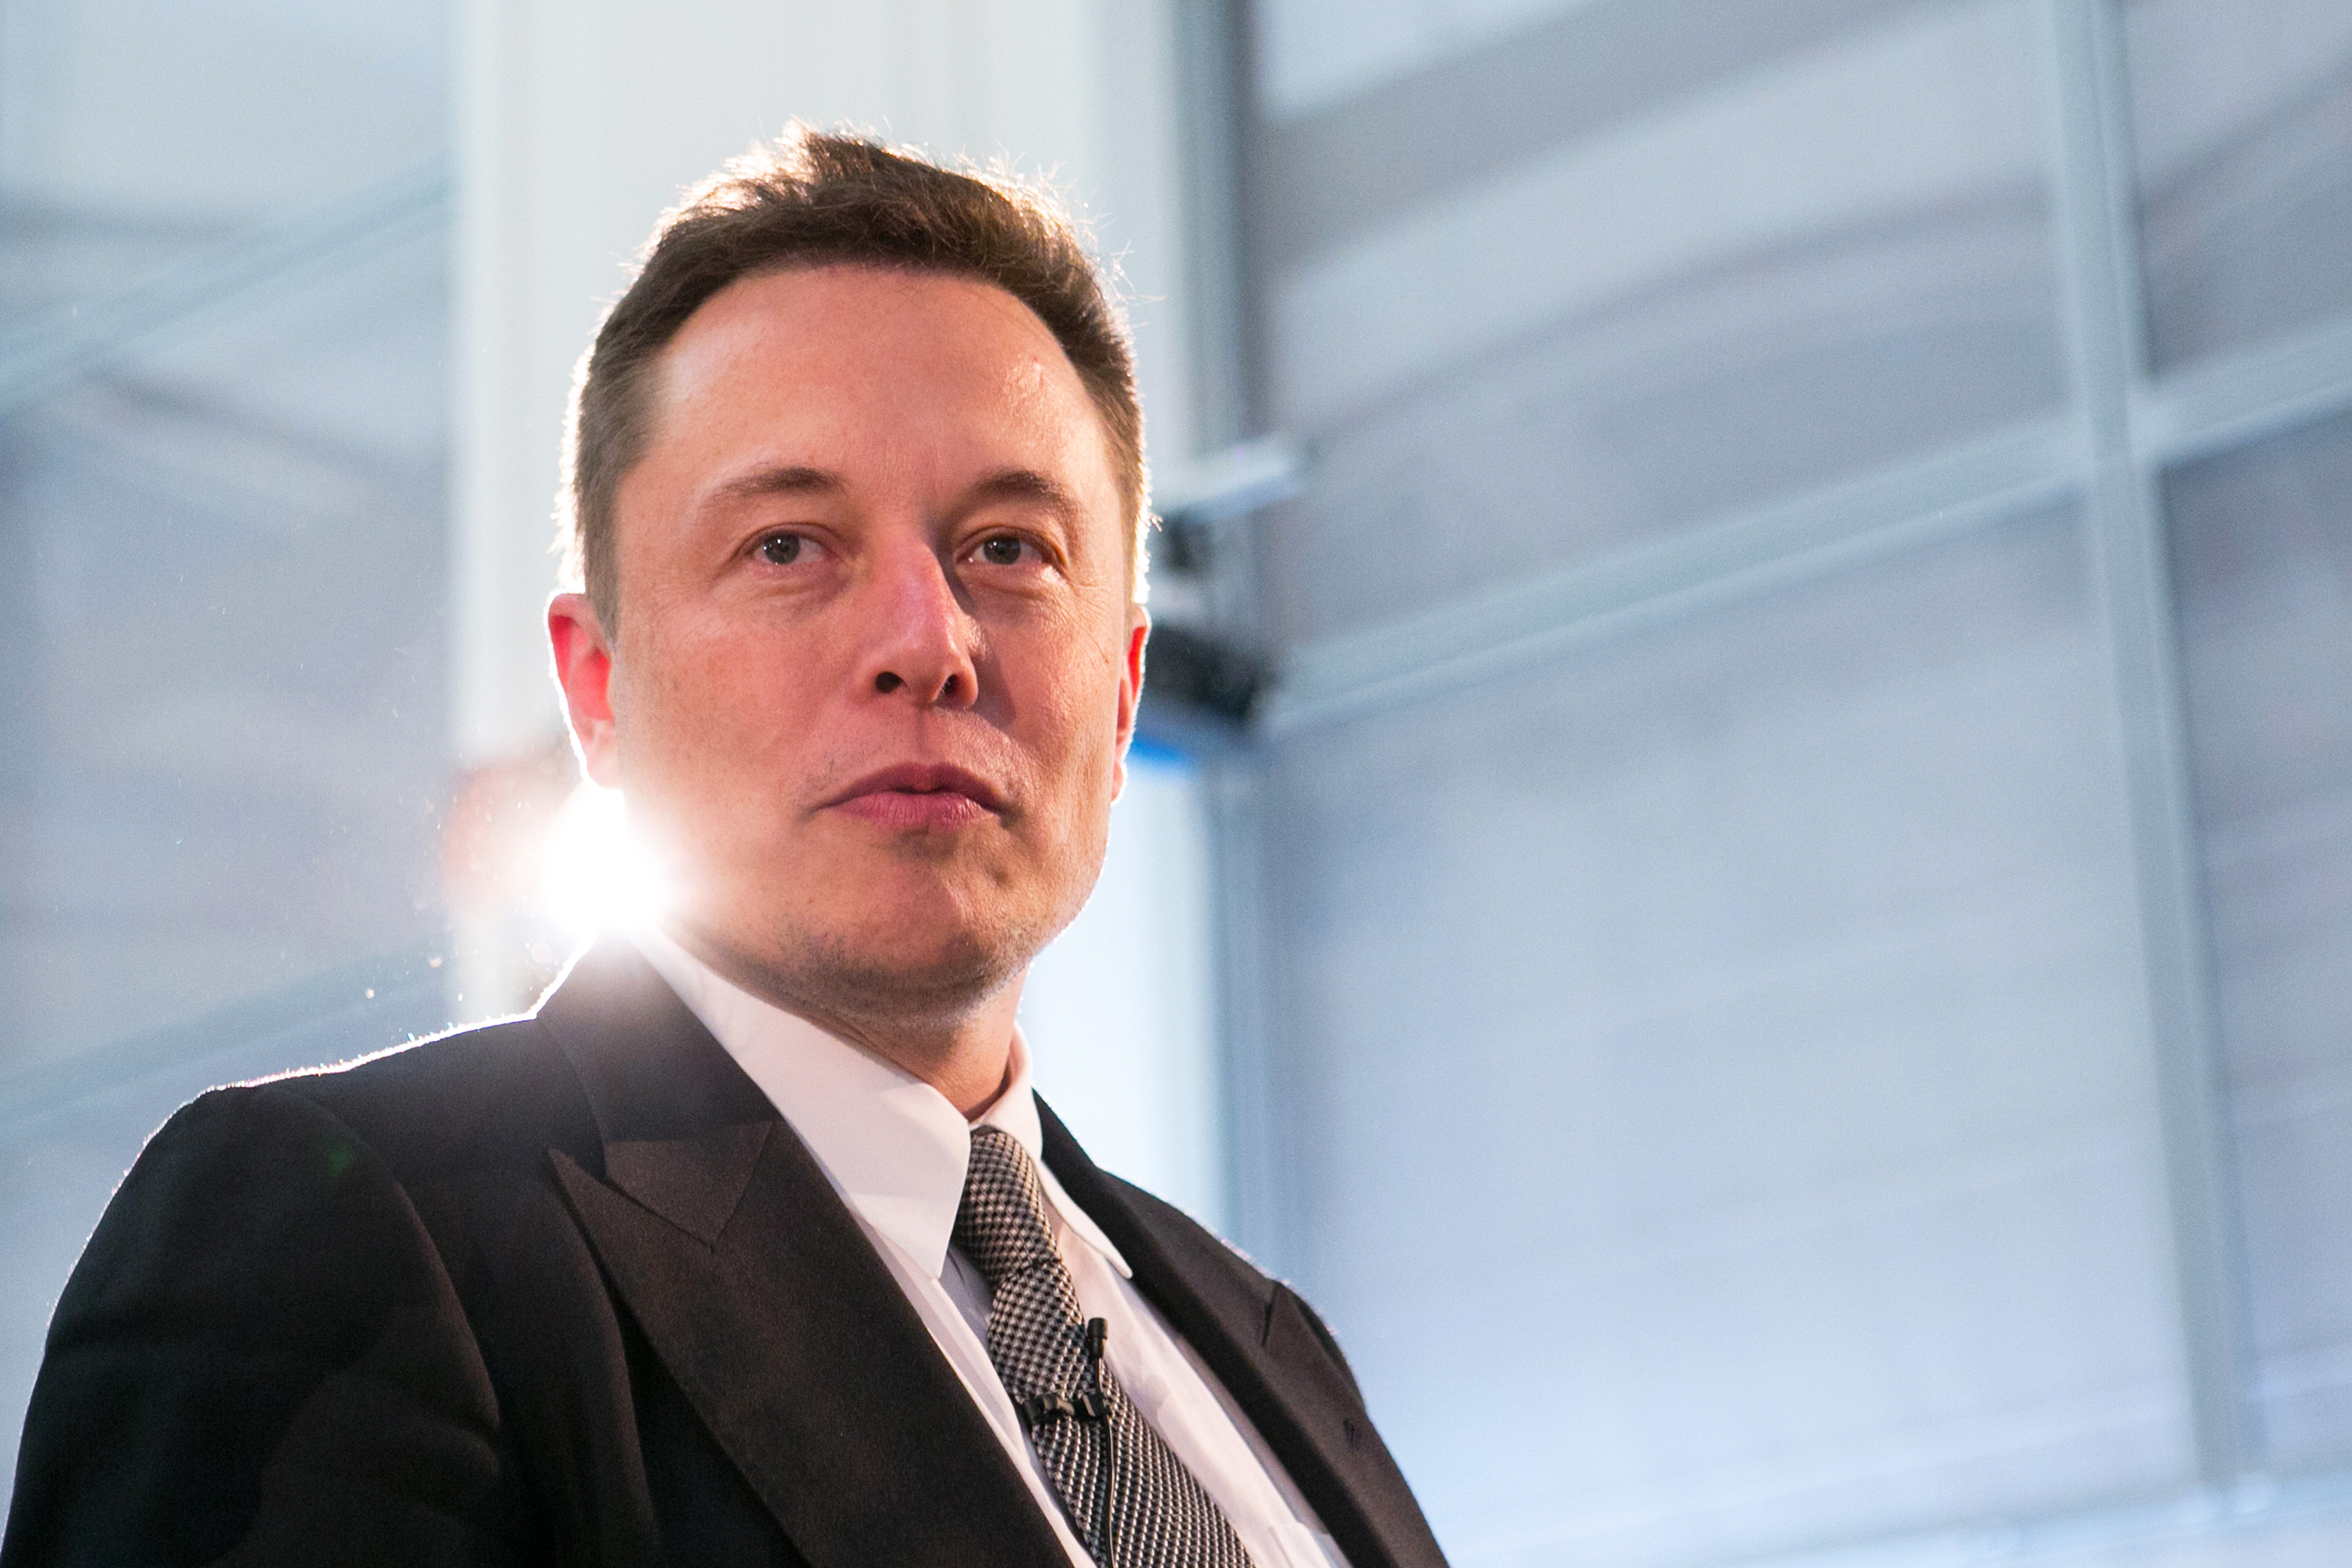 Elon Musk arrives for a news conference in Berlin, on Sept. 24, 2015.